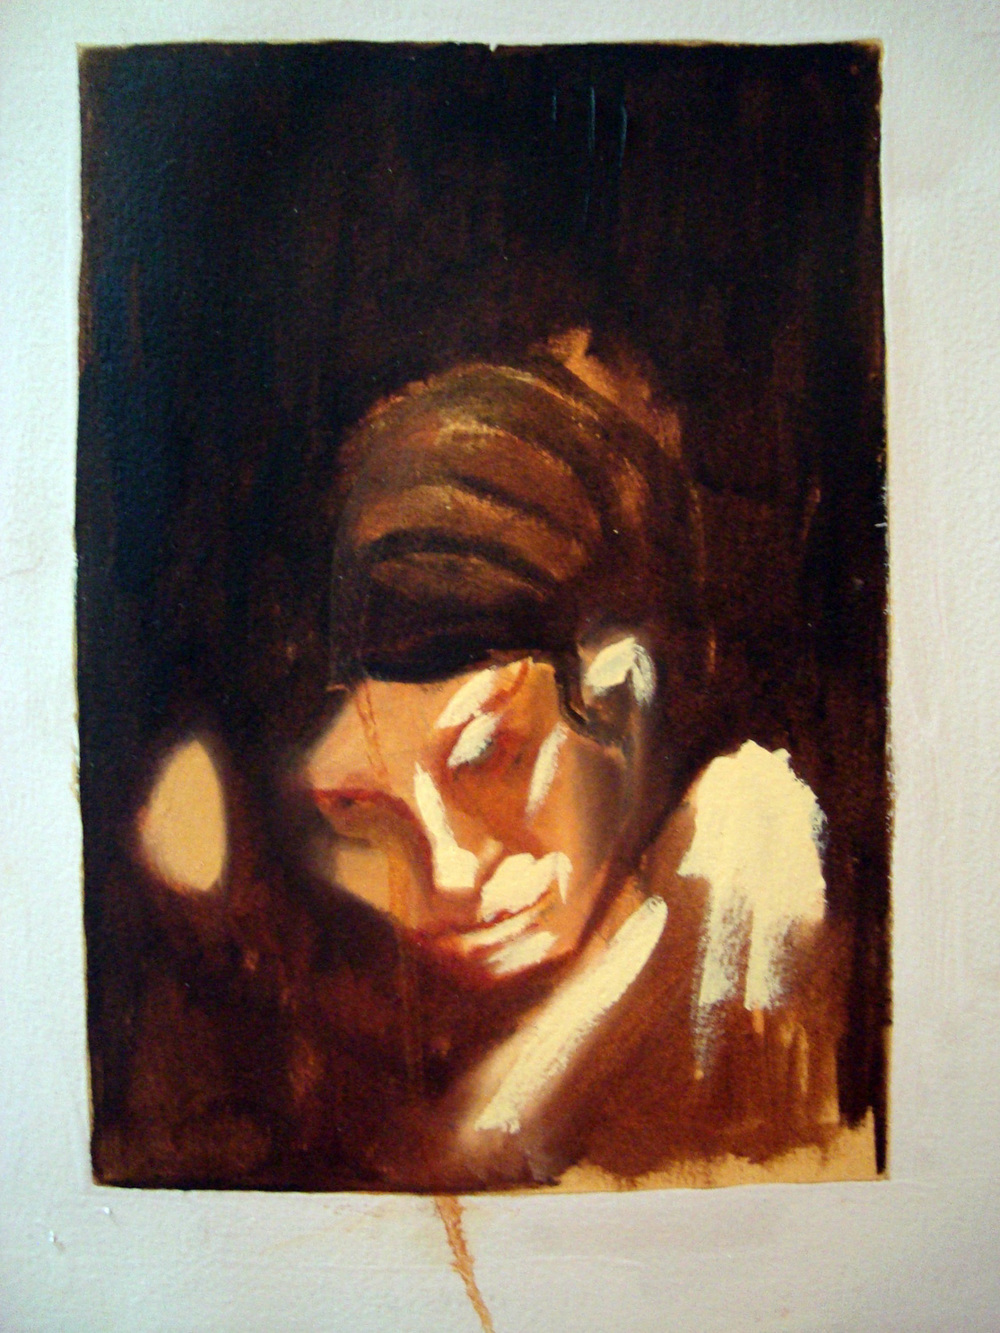 Forgotten Loves I, Oil on paper, 30x60 cm, 2010